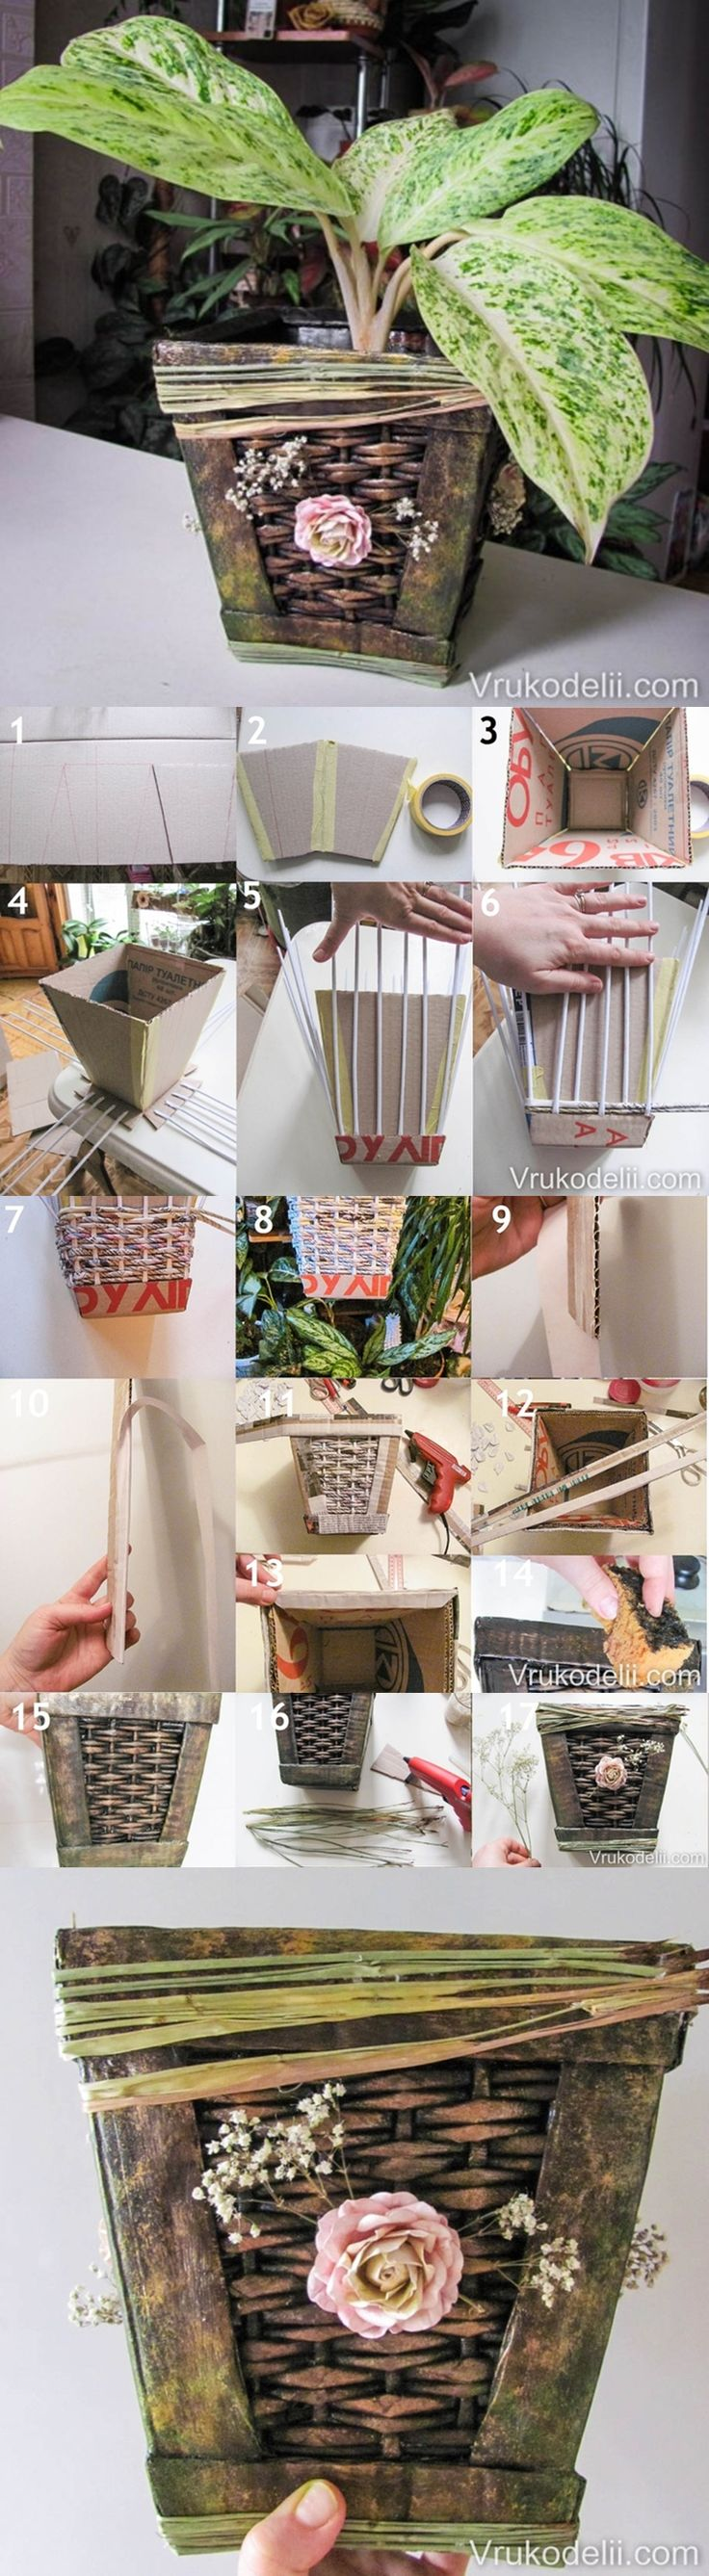 DIY Retro Paper Planter from Old Newspaper | www.FabArtDIY.com LIKE Us on Facebook == https://www.facebook.com/FabArtDIY